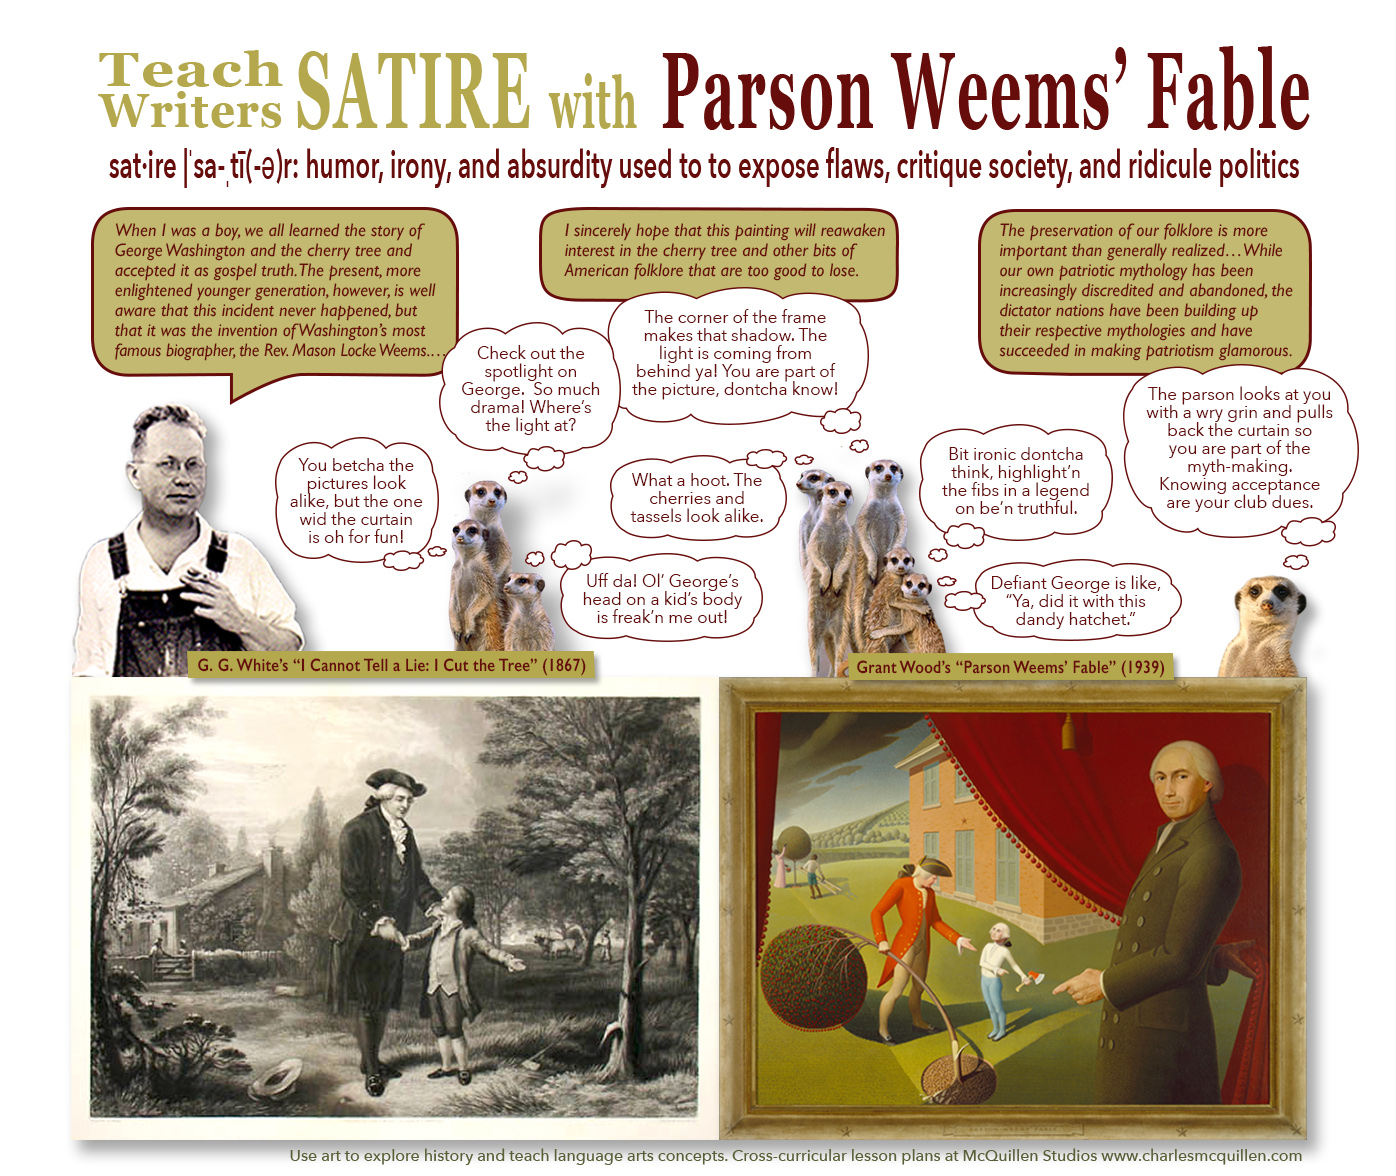 Teach writers about satire with Grant Wood's Parson Weems' Fable